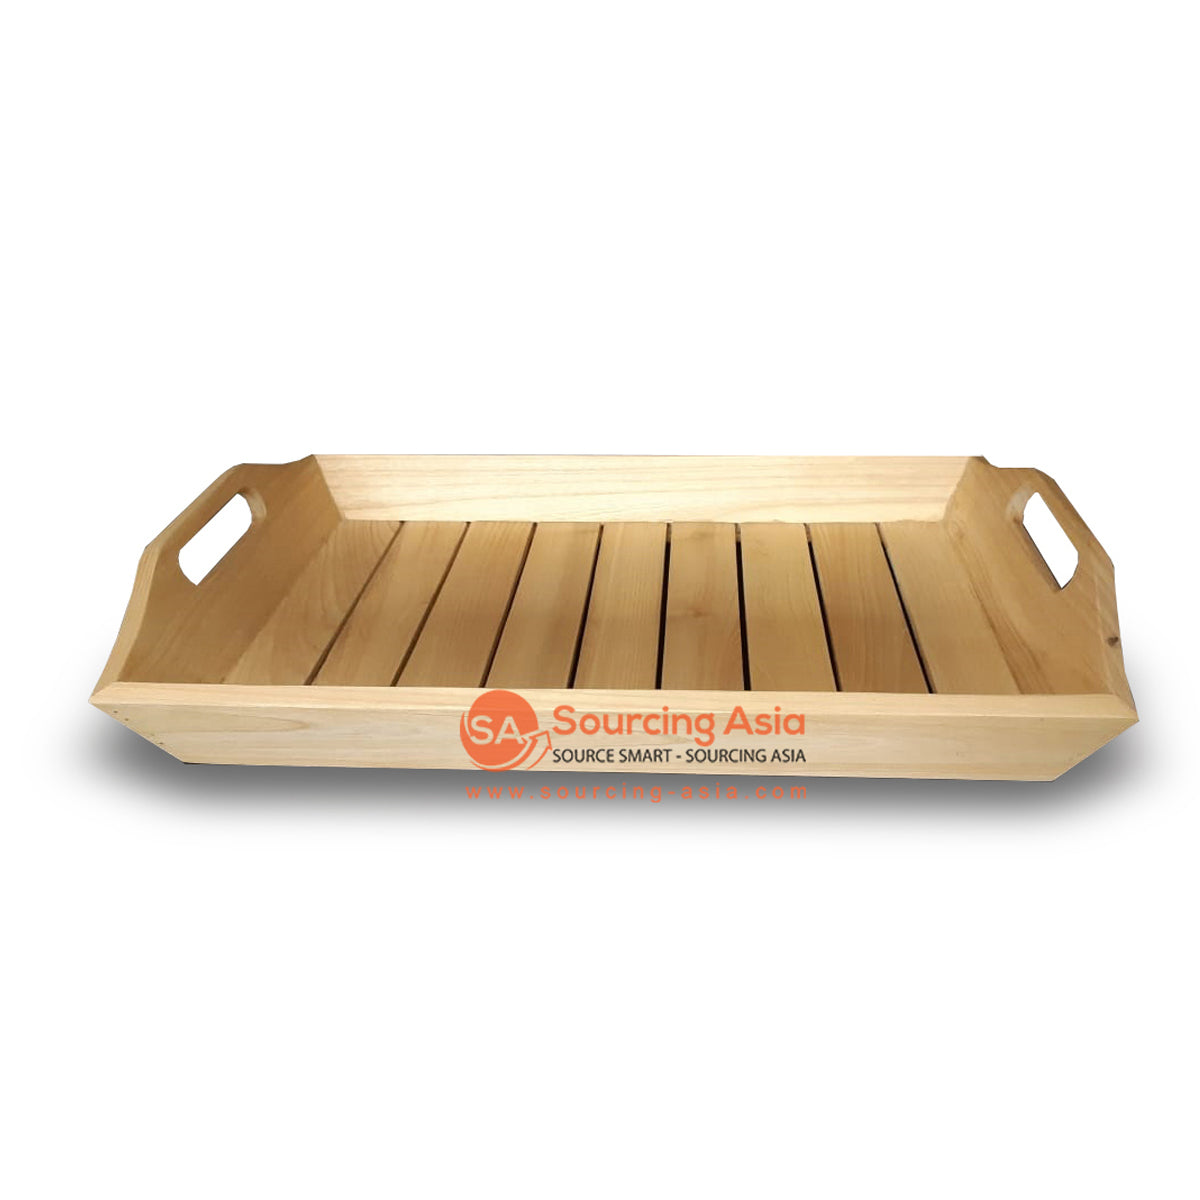 BNT216NAT NATURAL SUNGKAI WOOD TRAY